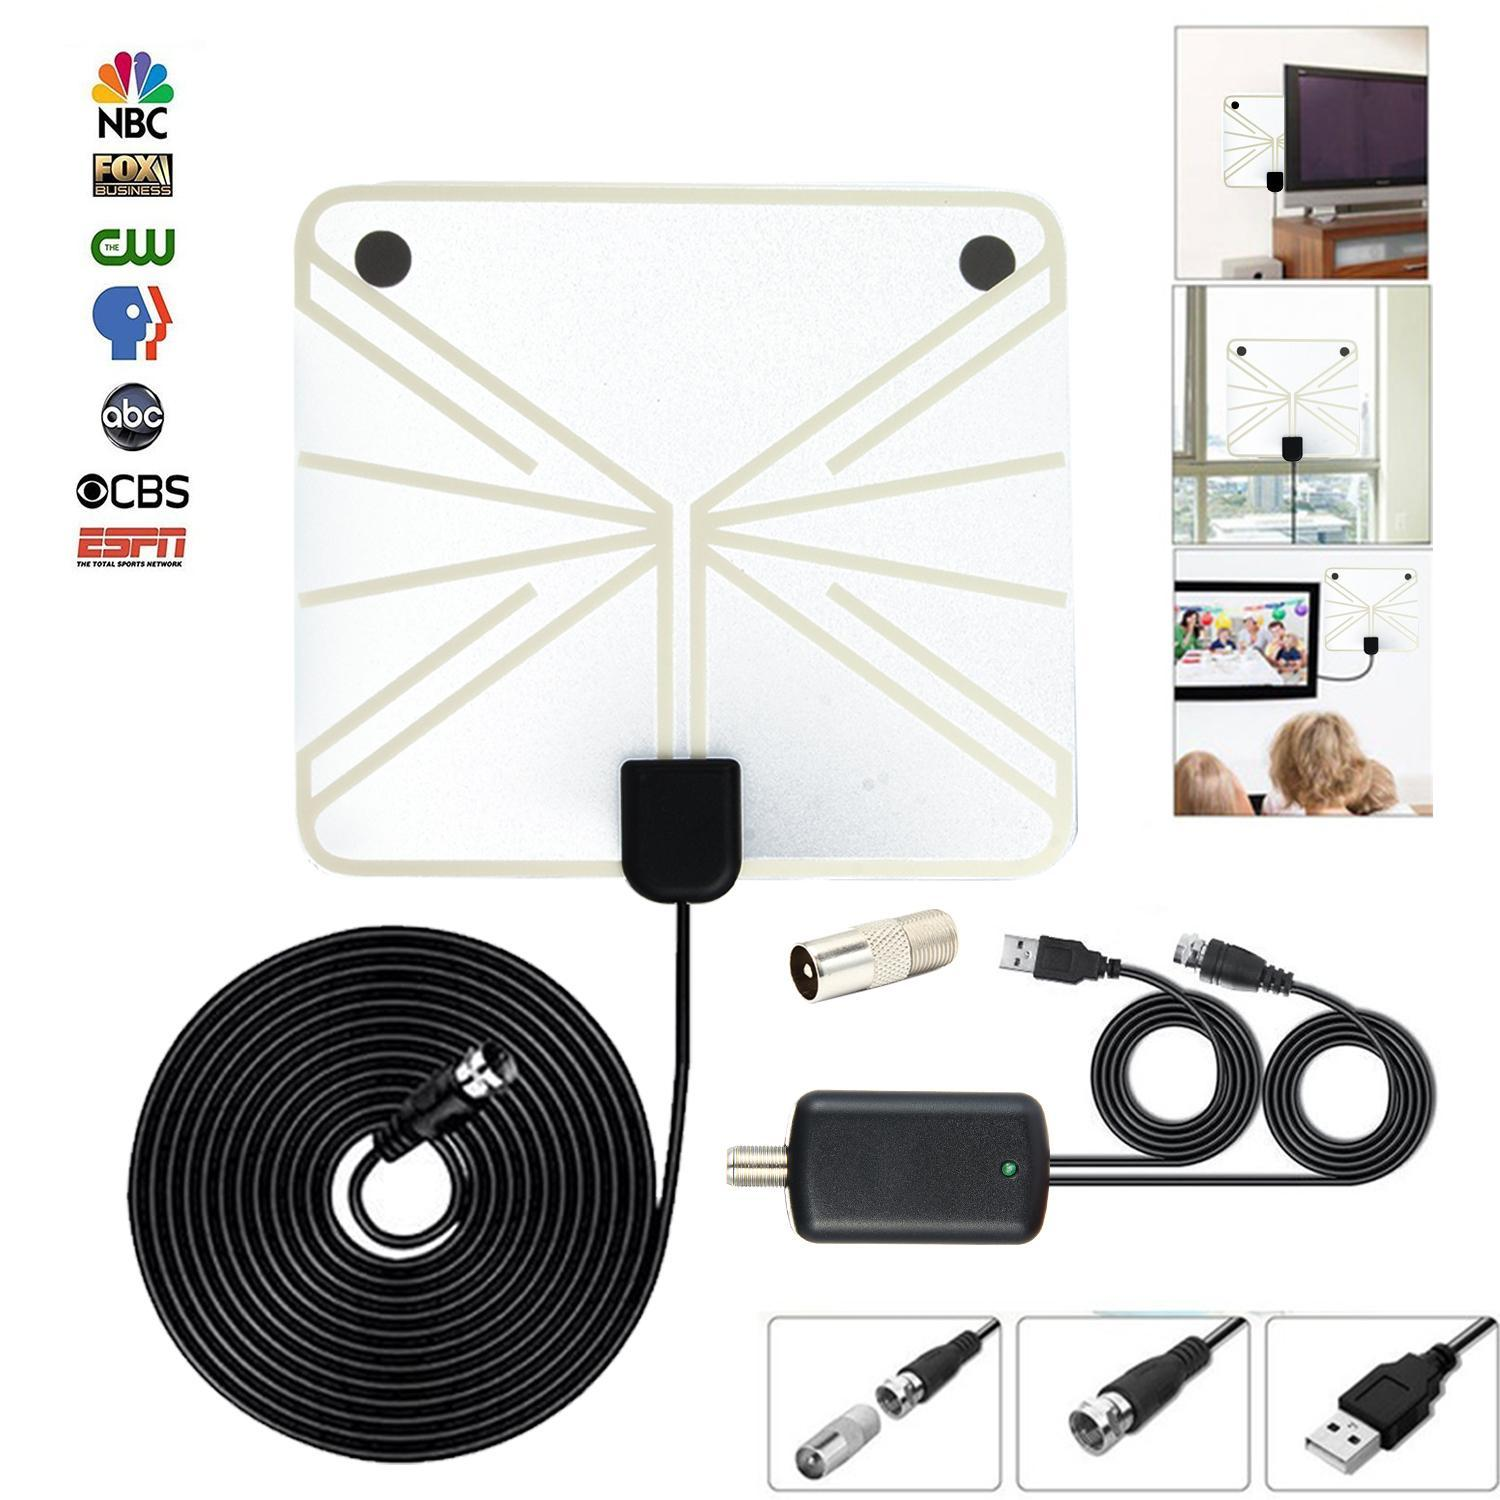 leegoal Universal TV Antenna, Indoor Digital HDTV Antenna Amplified 75 Mile Range 4K HD VHF UHF Freeview For Life Local Channels Broadcast For All Types Of Home Smart Television - intl